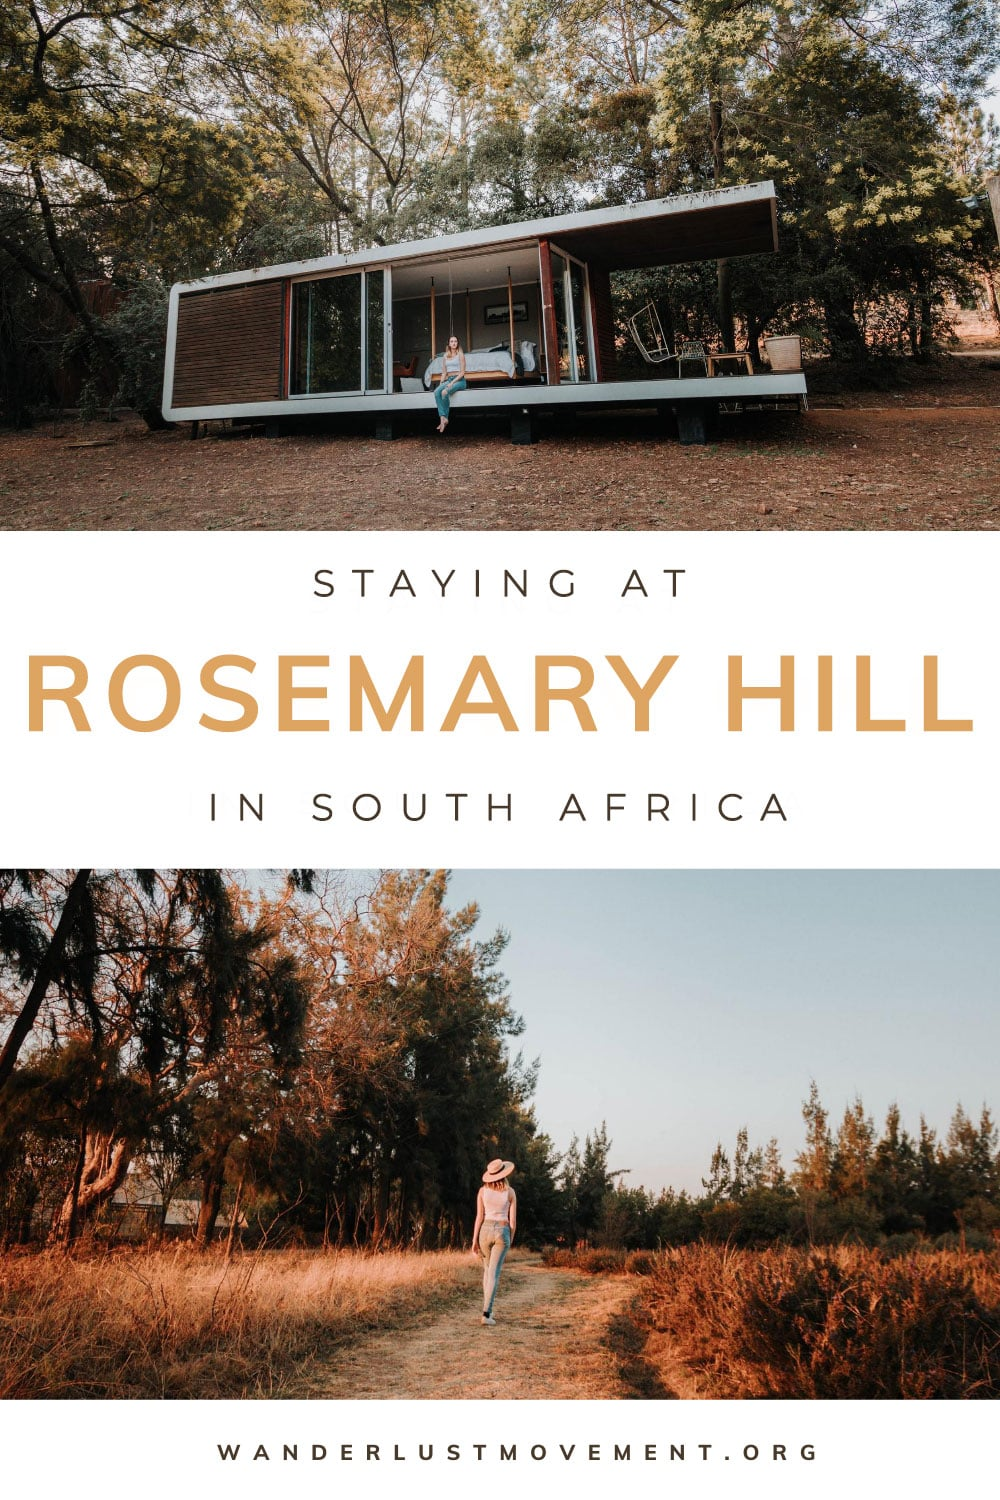 Staying in a Cabin at Rosemary Hill Farm in Pretoria